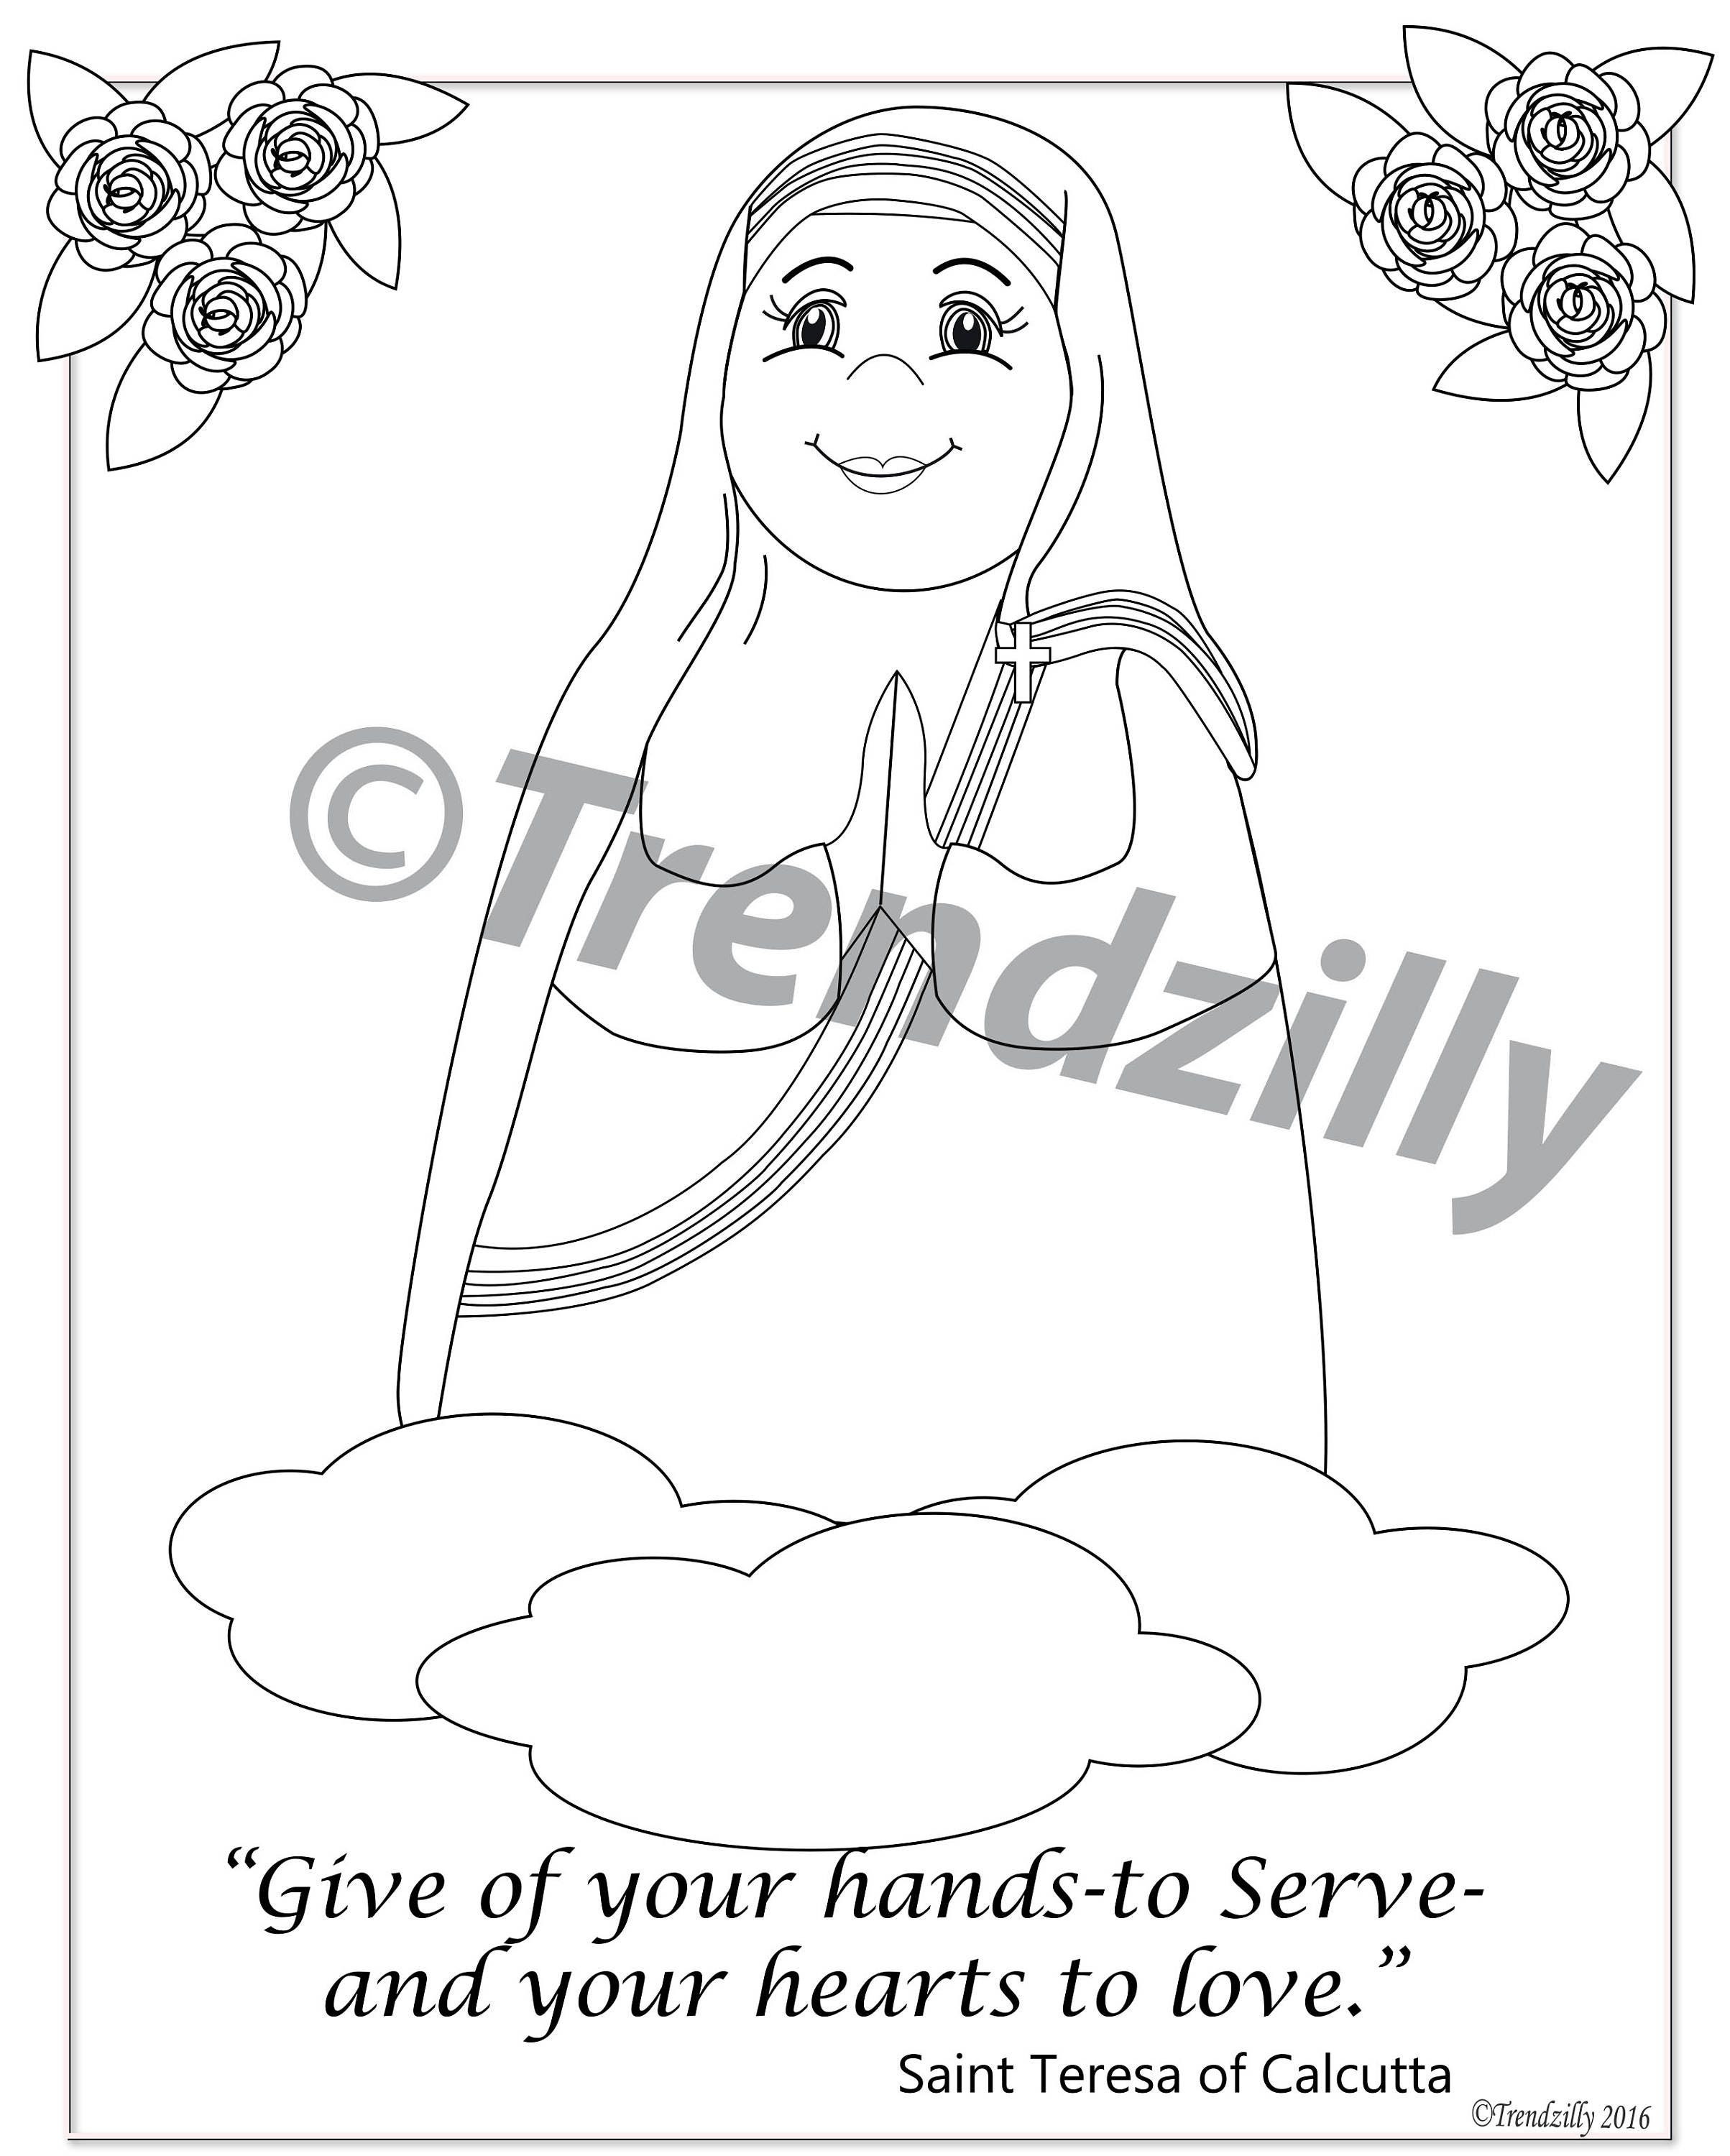 Coloring book download zip - Soft Saint Coloring Book Saint Coloring Book Kids Coloring Book Feast Day Coloring Pages Coloring Book Printable Download